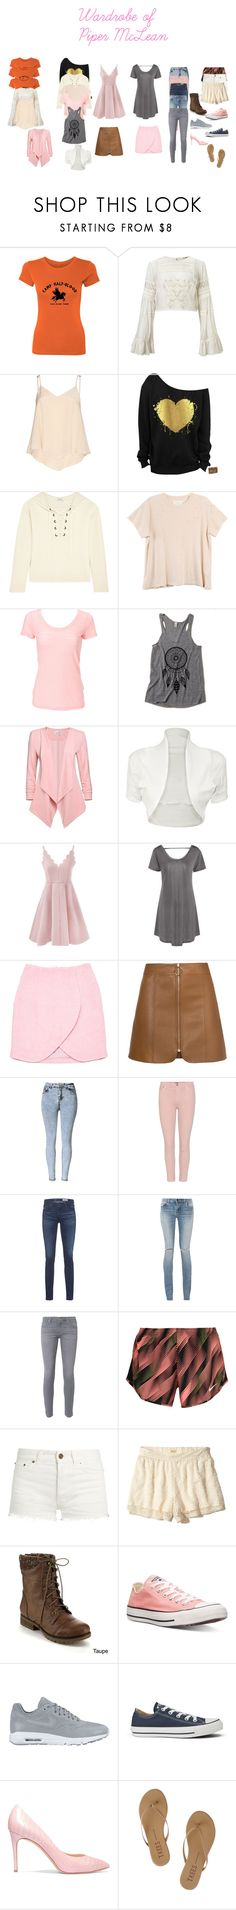 """""""The Wardrobe of Piper McLean"""" by a-fangirl-mrc on Polyvore featuring Miss Selfridge, Alice + Olivia, Madewell, The Great, Simplex Apparel, WearAll, Carven, Citizens of Humanity, AG Adriano Goldschmied and Yves Saint Laurent"""